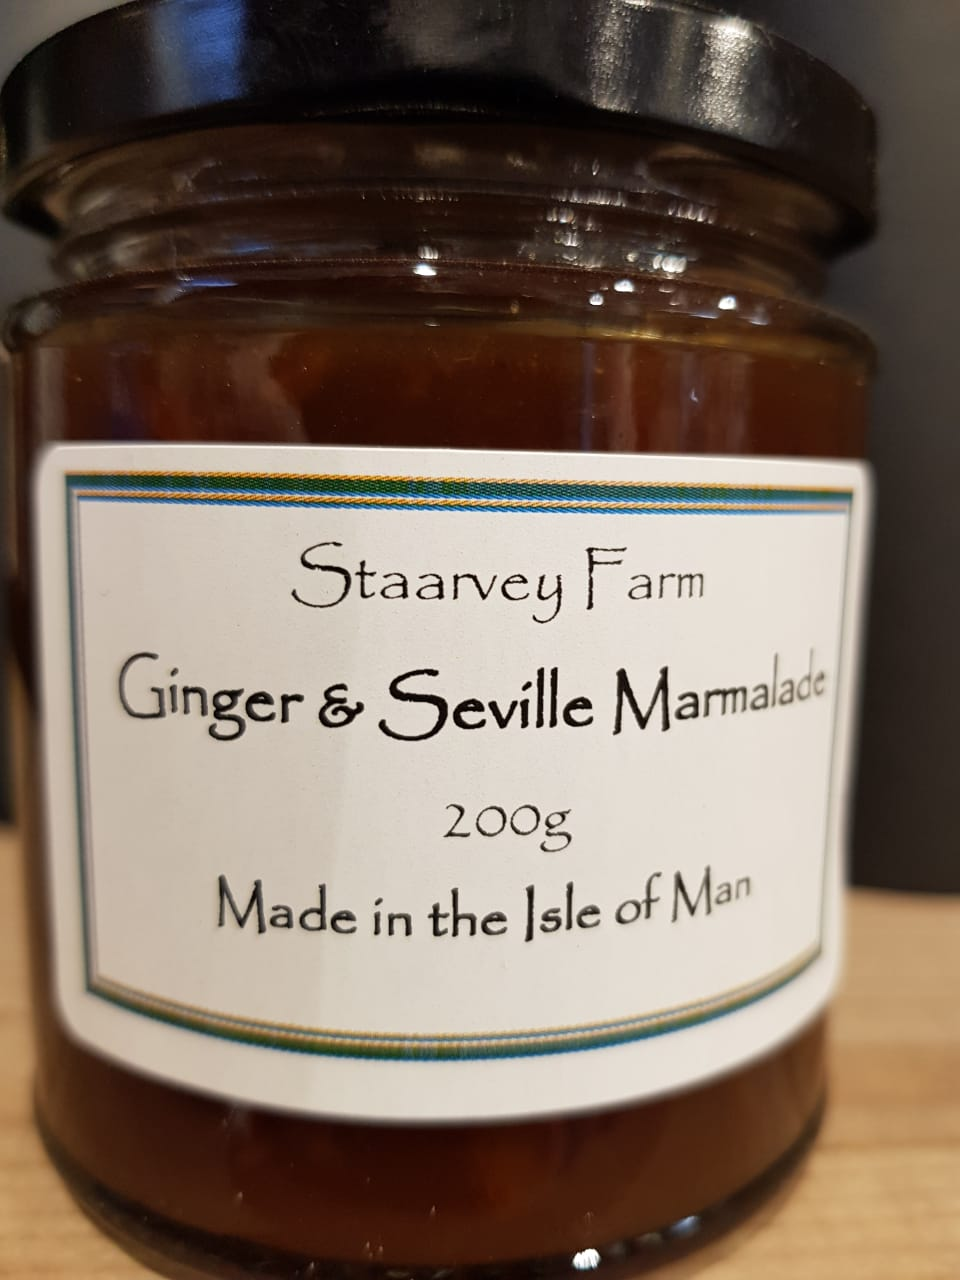 Staarvey Farm Ginger & Seville Marmalade